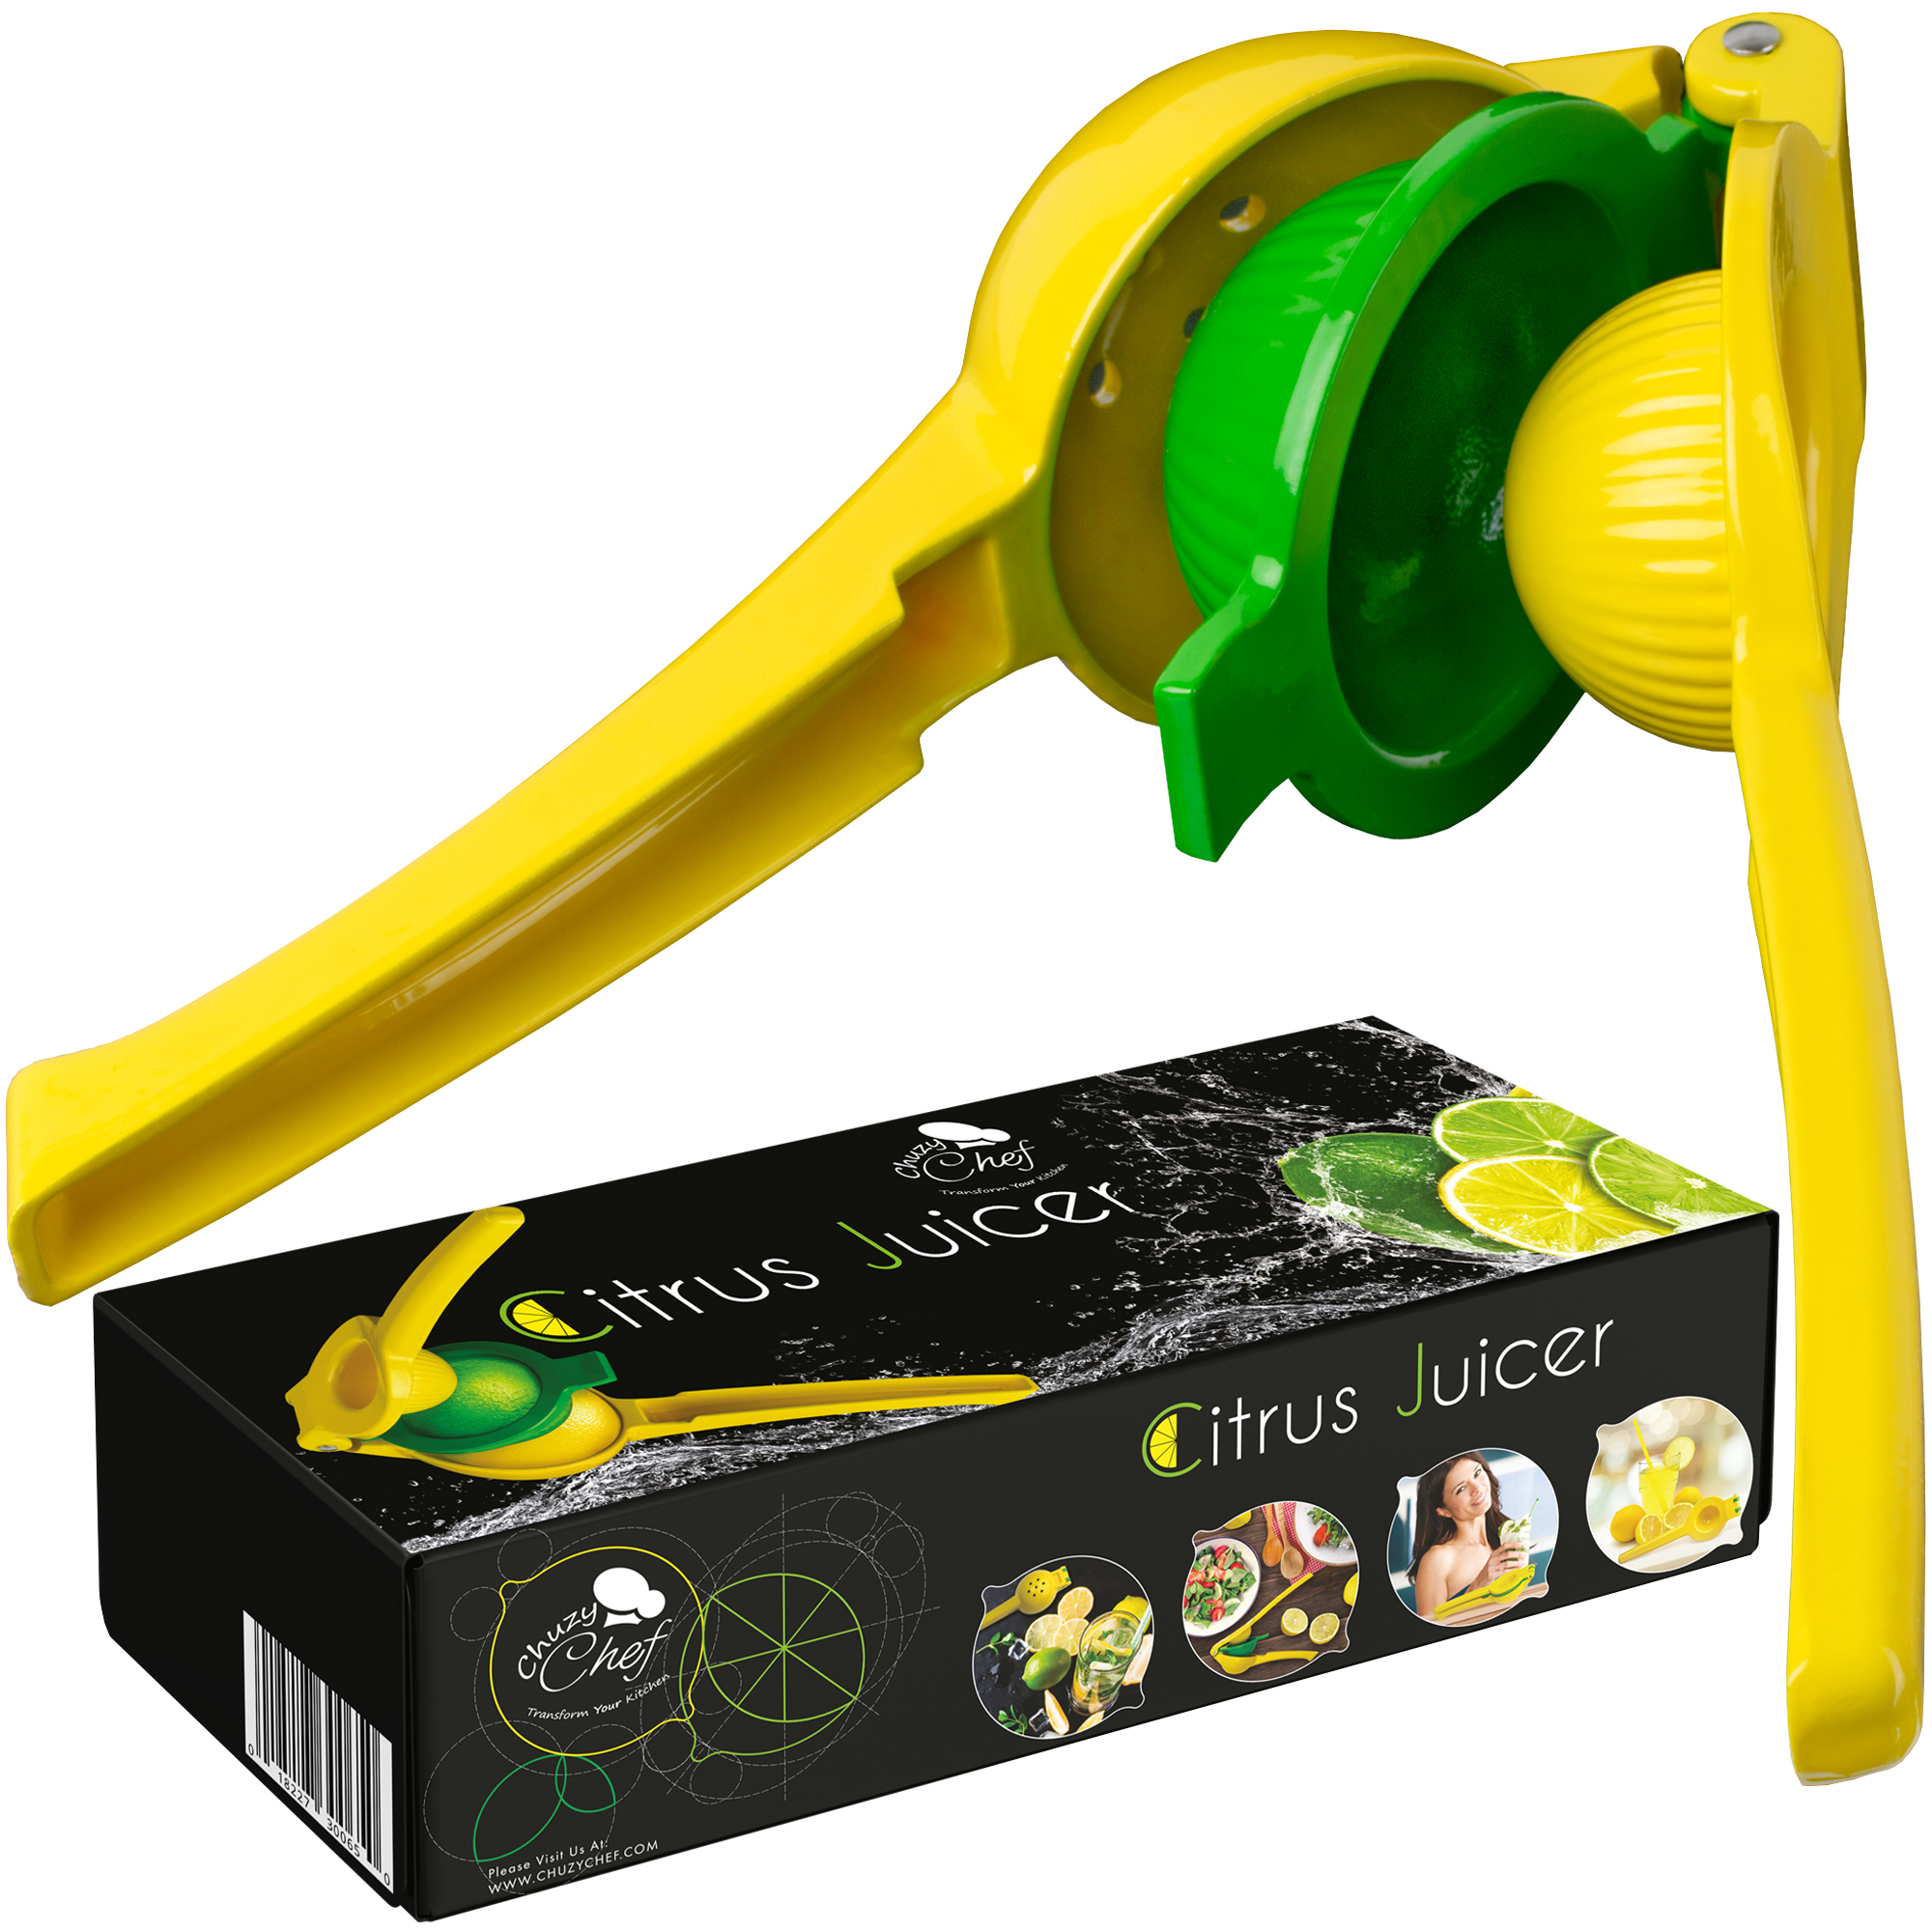 Lemon-Squeezer-Juicer-Handheld-Lime-Lemon-Squeezer-Press-Juice-Manual-Juicers